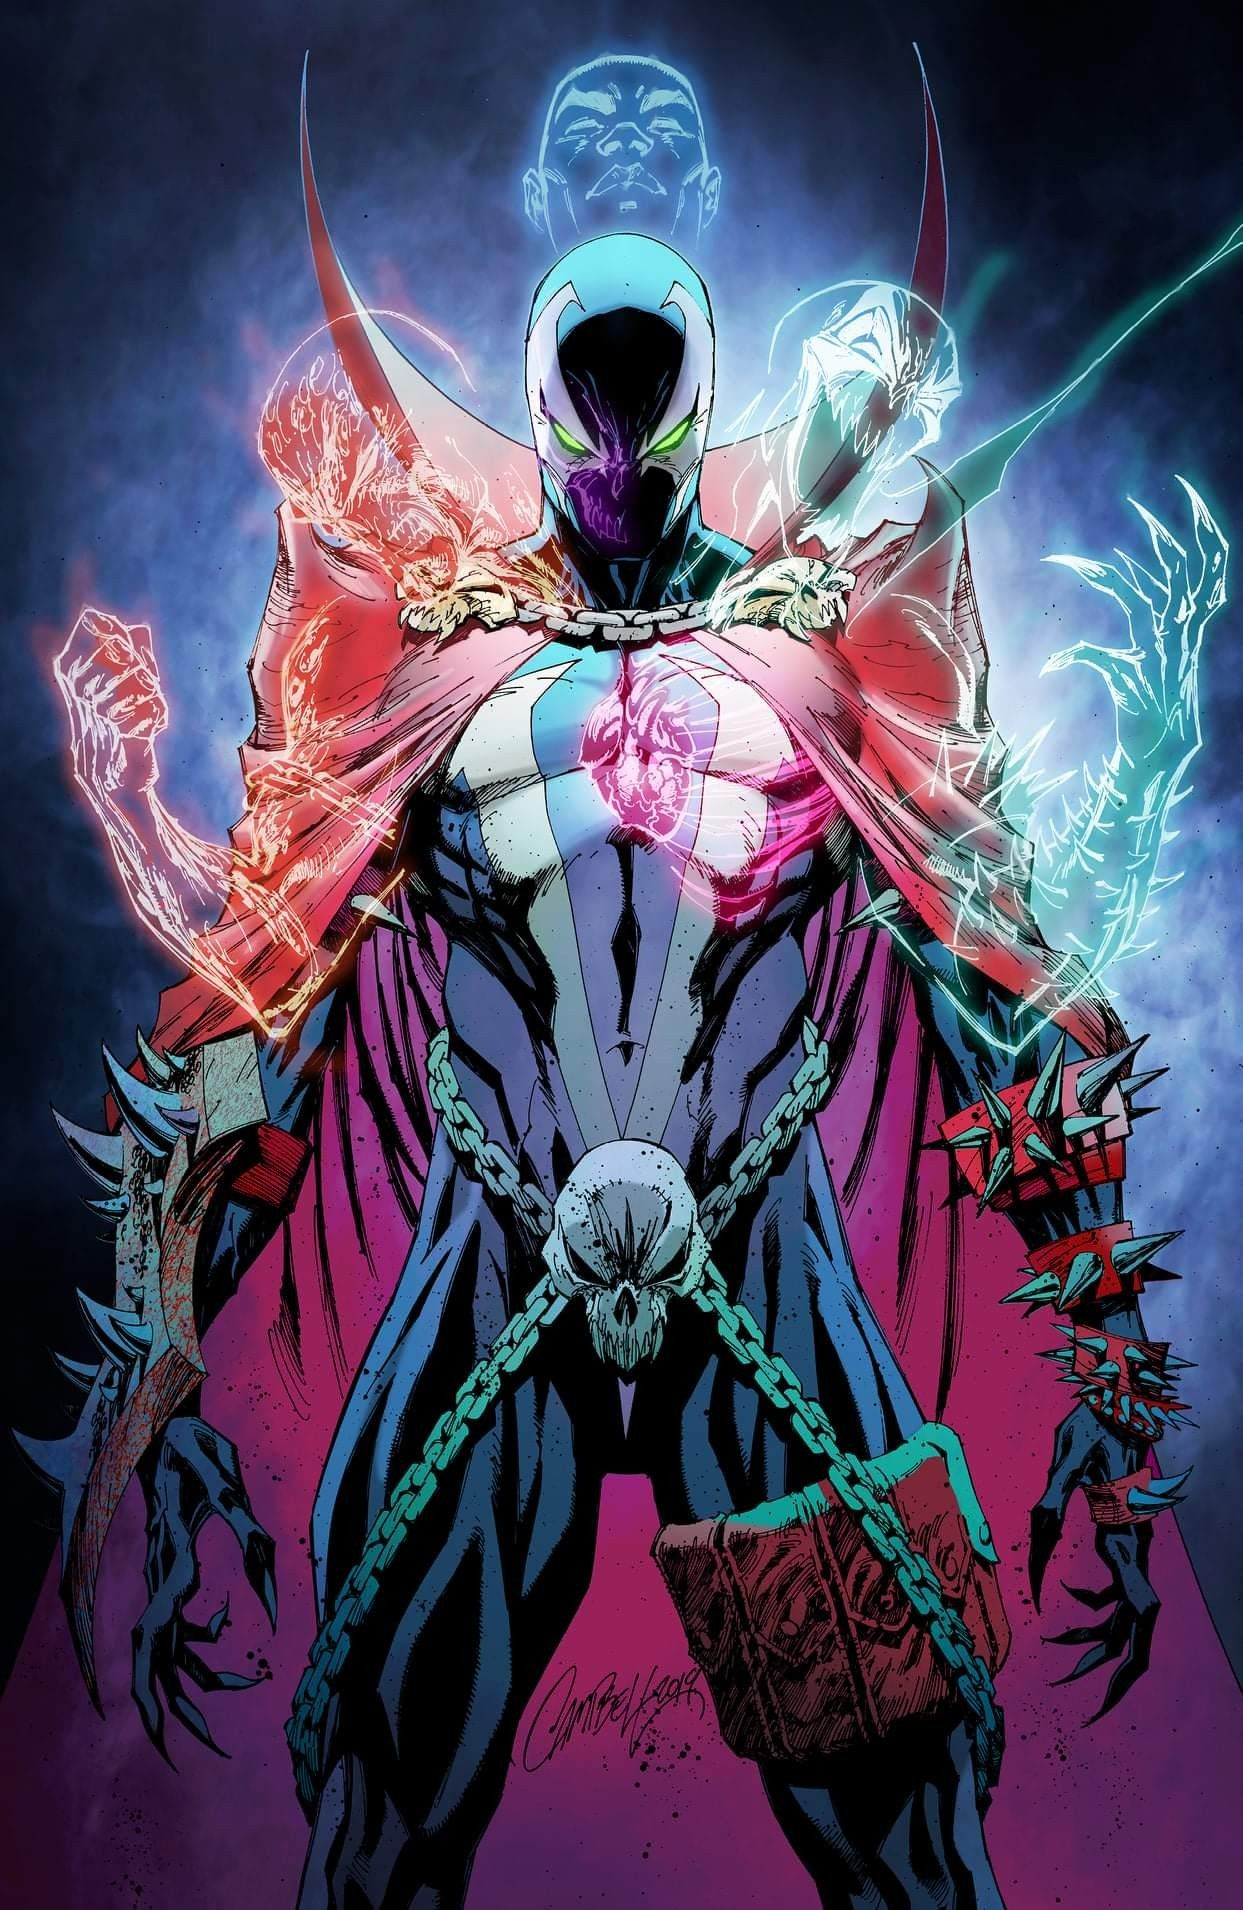 Image NM//NM 2019 Campbell Virgin Variant Cover M Spawn #300